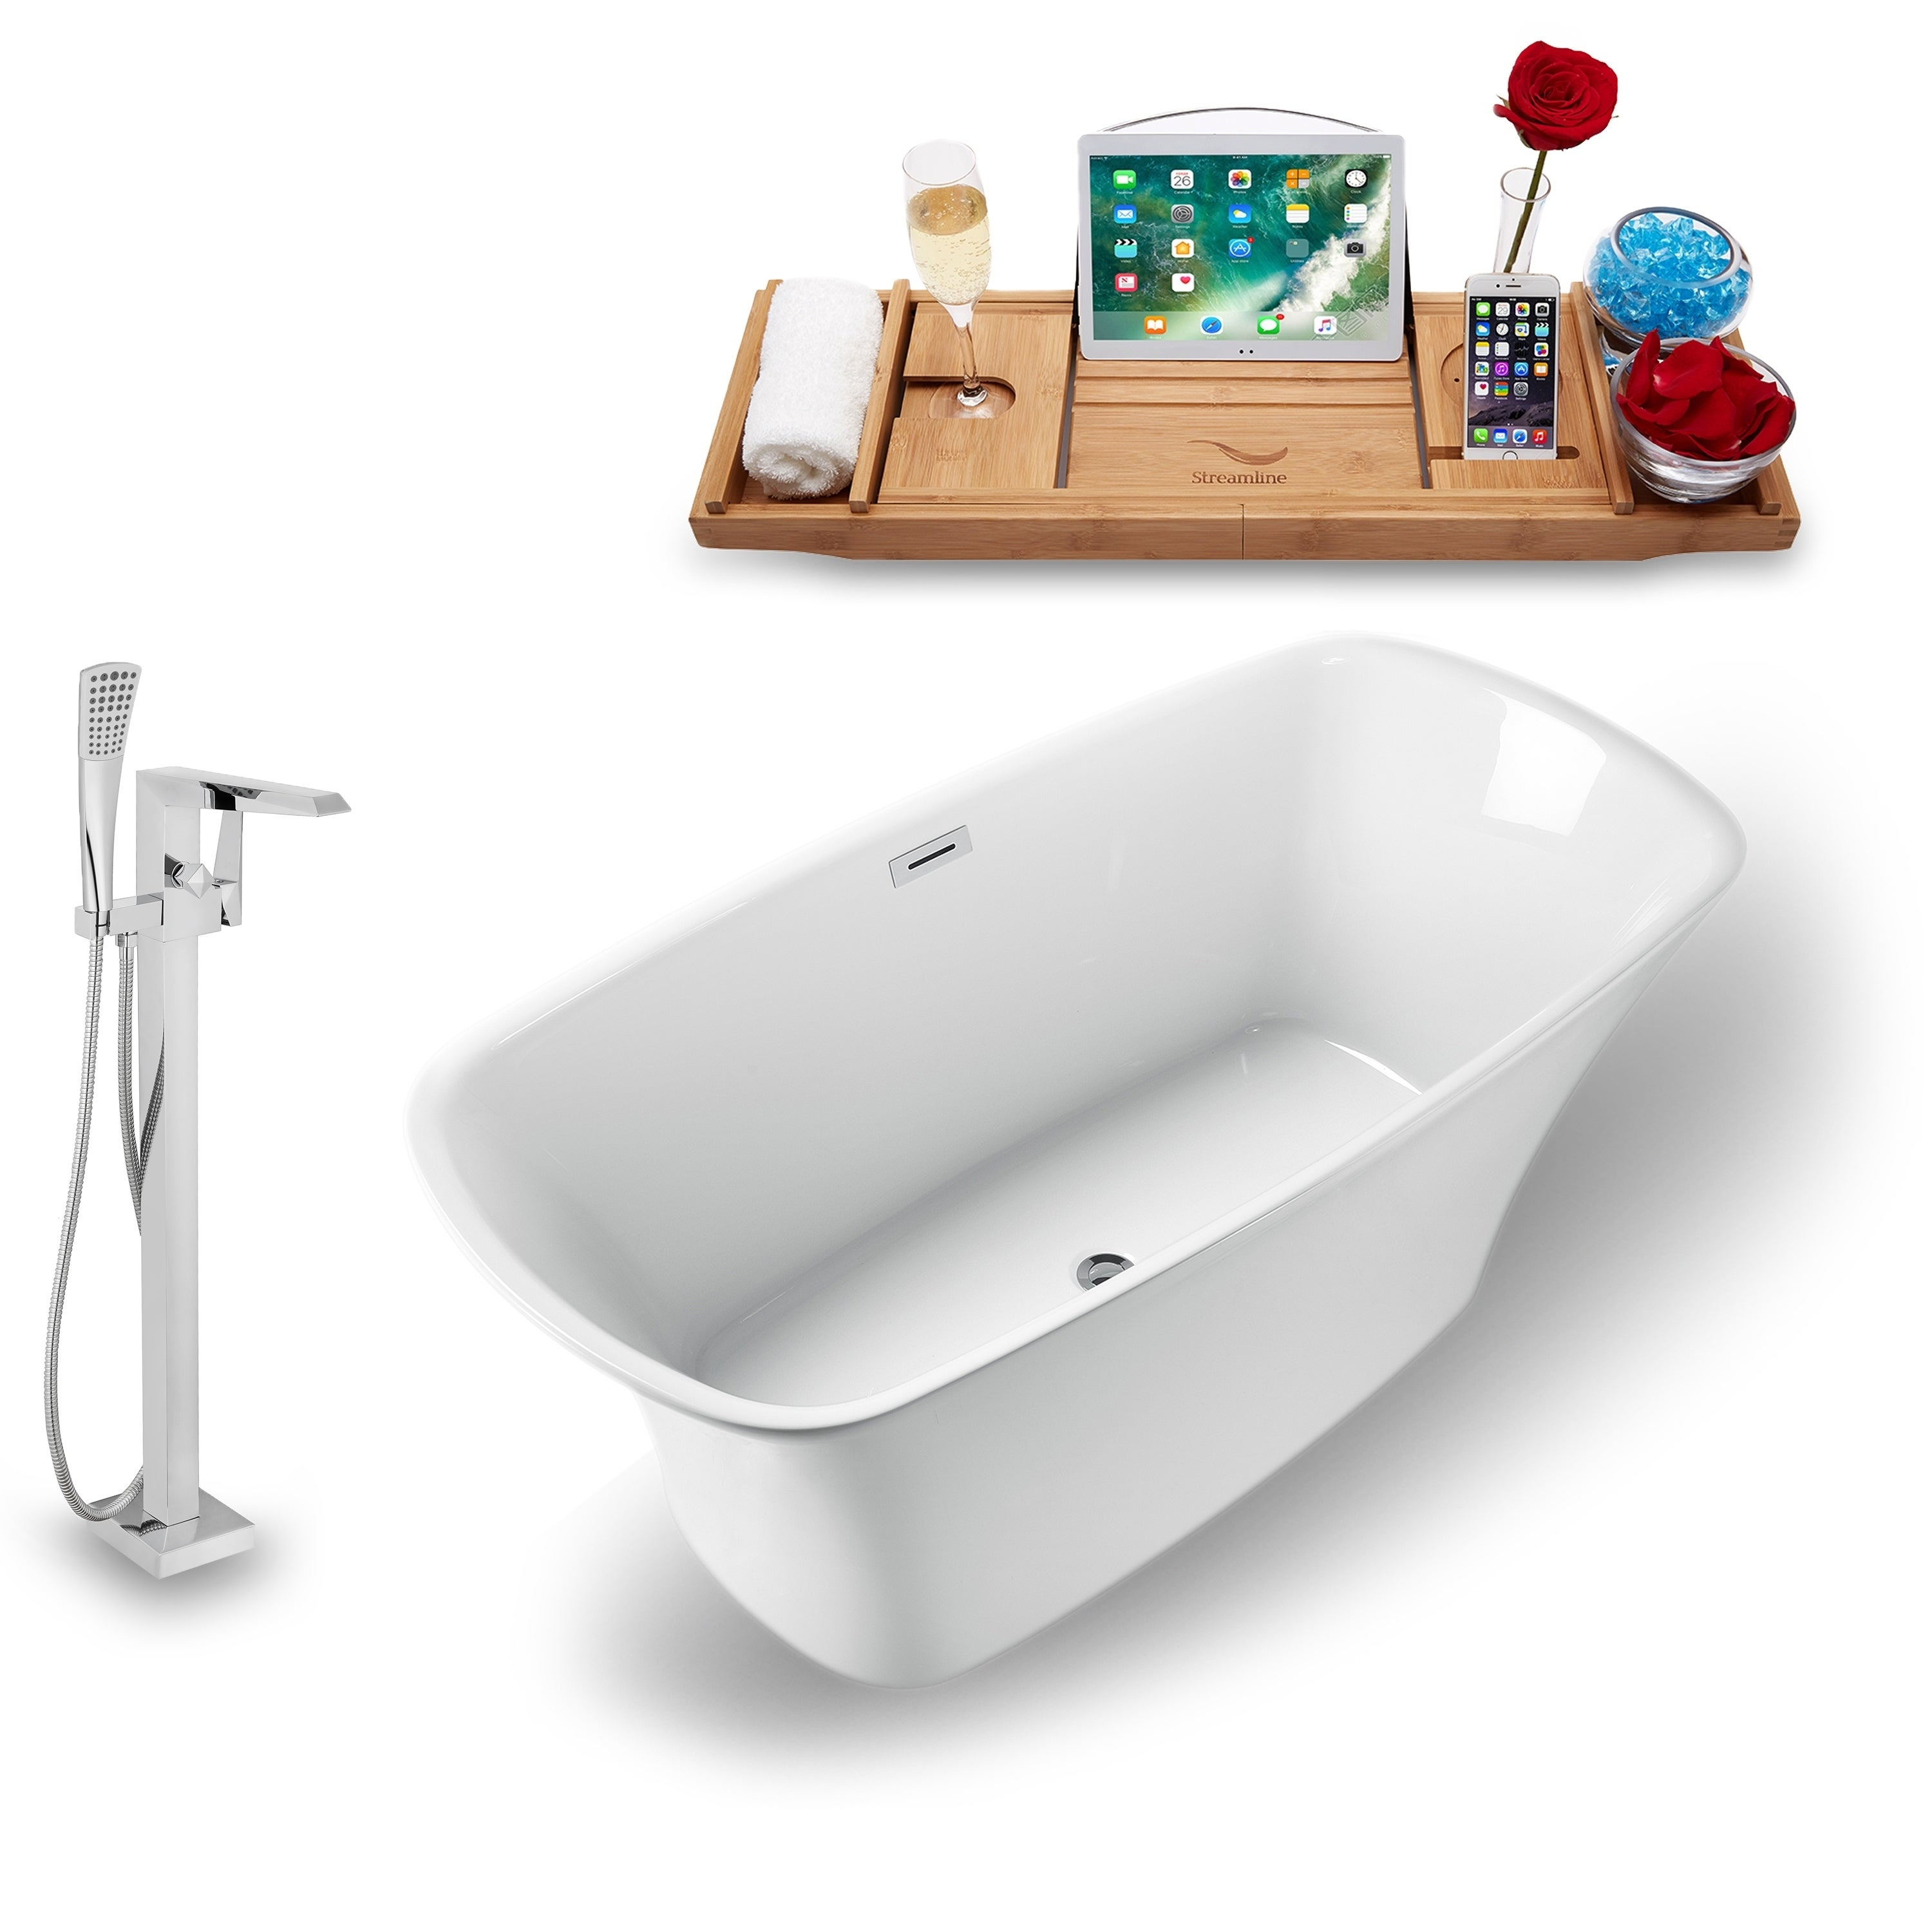 Shop Streamline 59 Inch Freestanding Tub Faucet And Tray Set